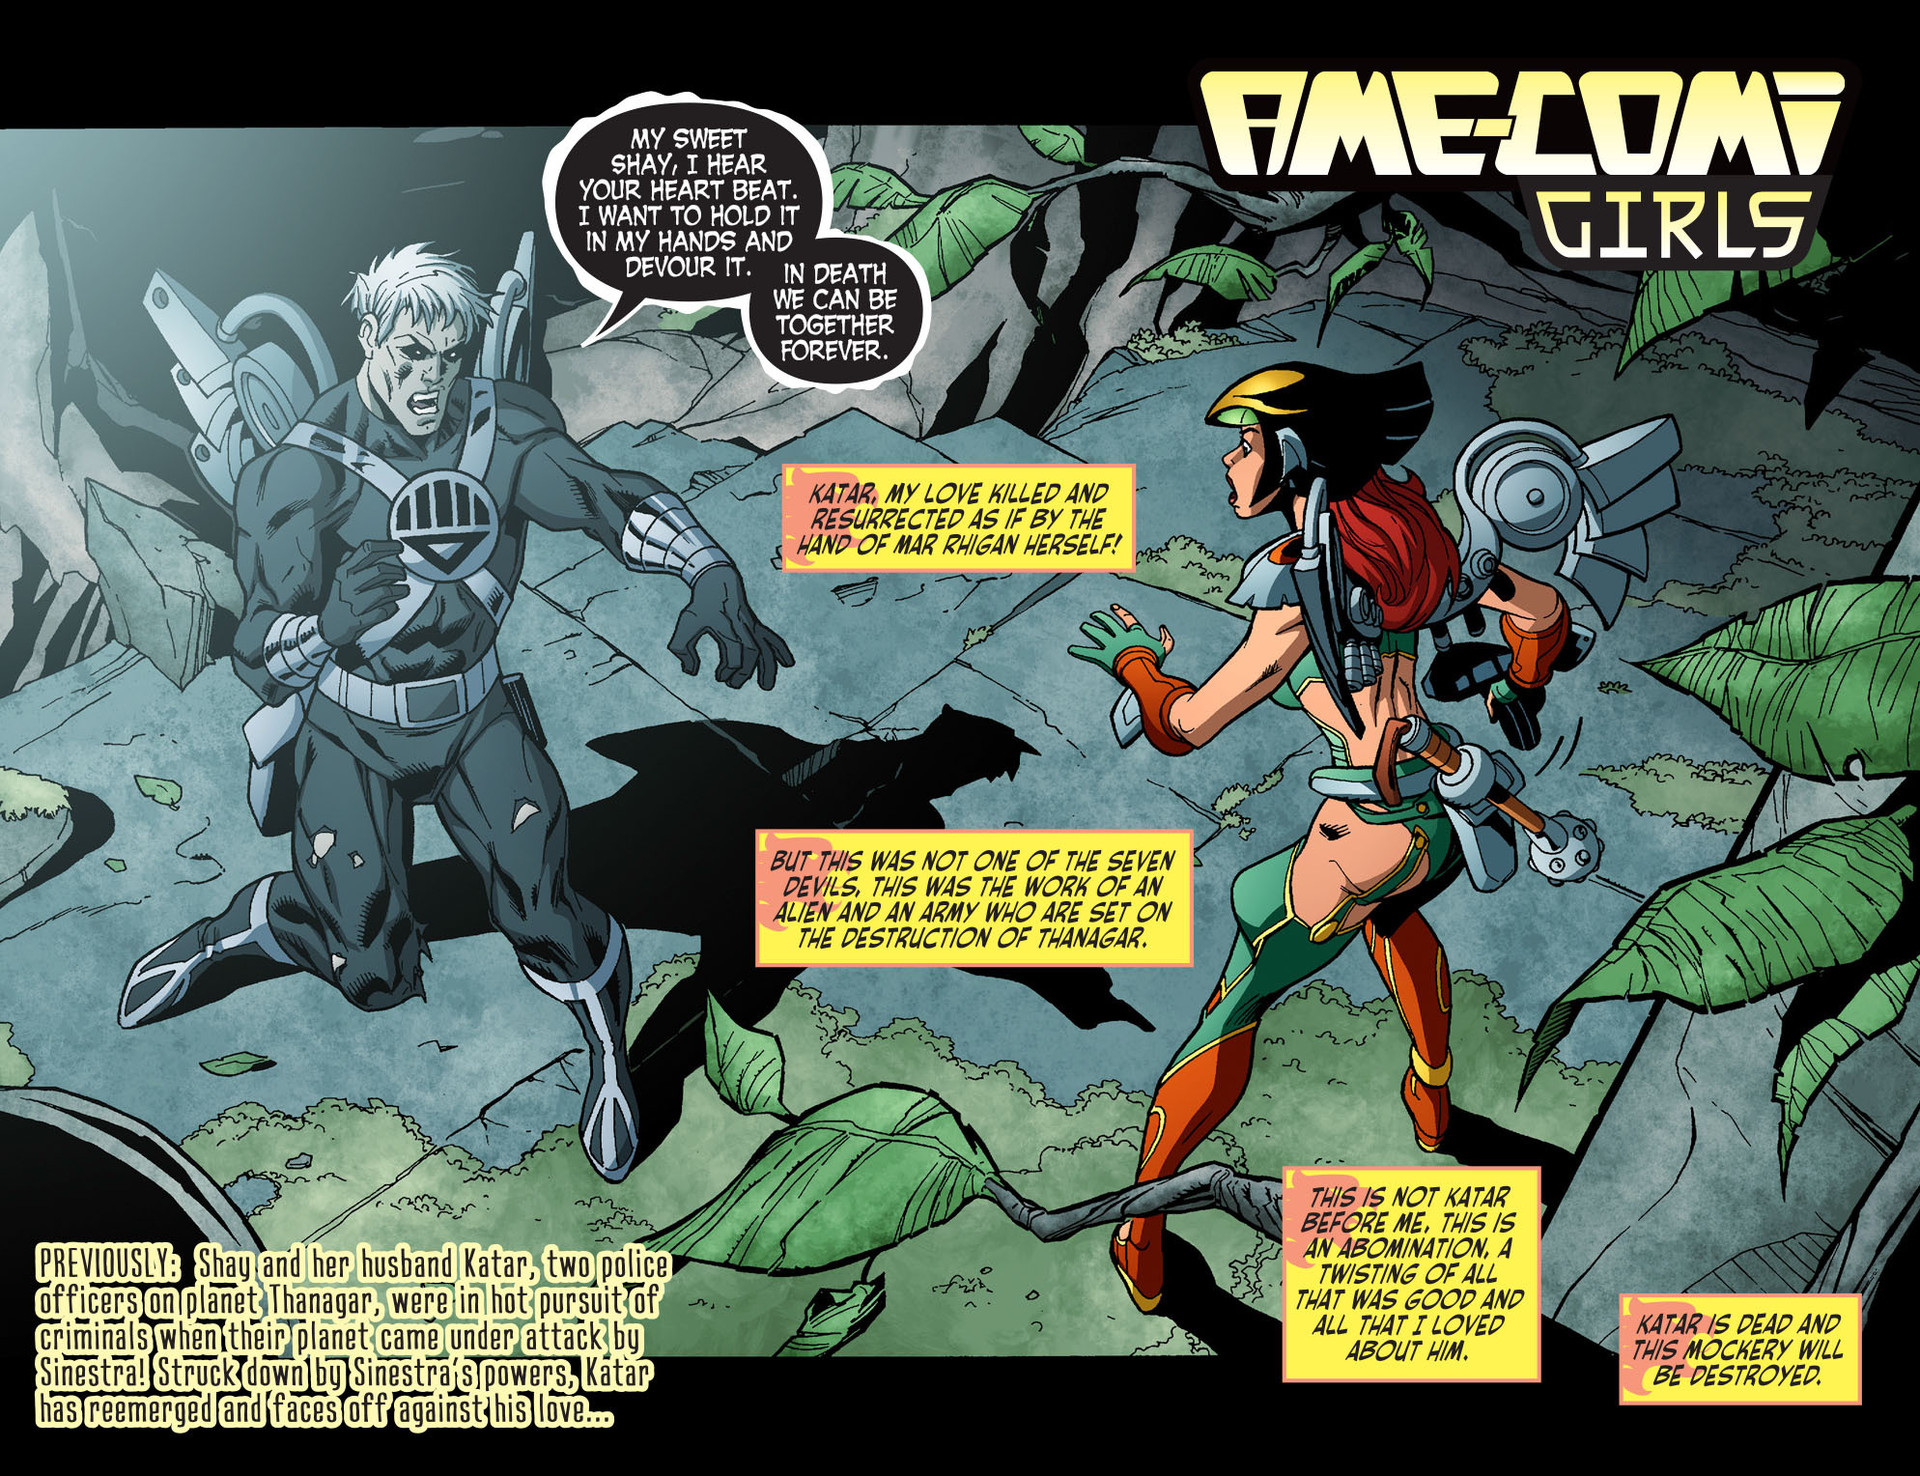 Read online Ame-Comi Girls comic -  Issue #14 - 3